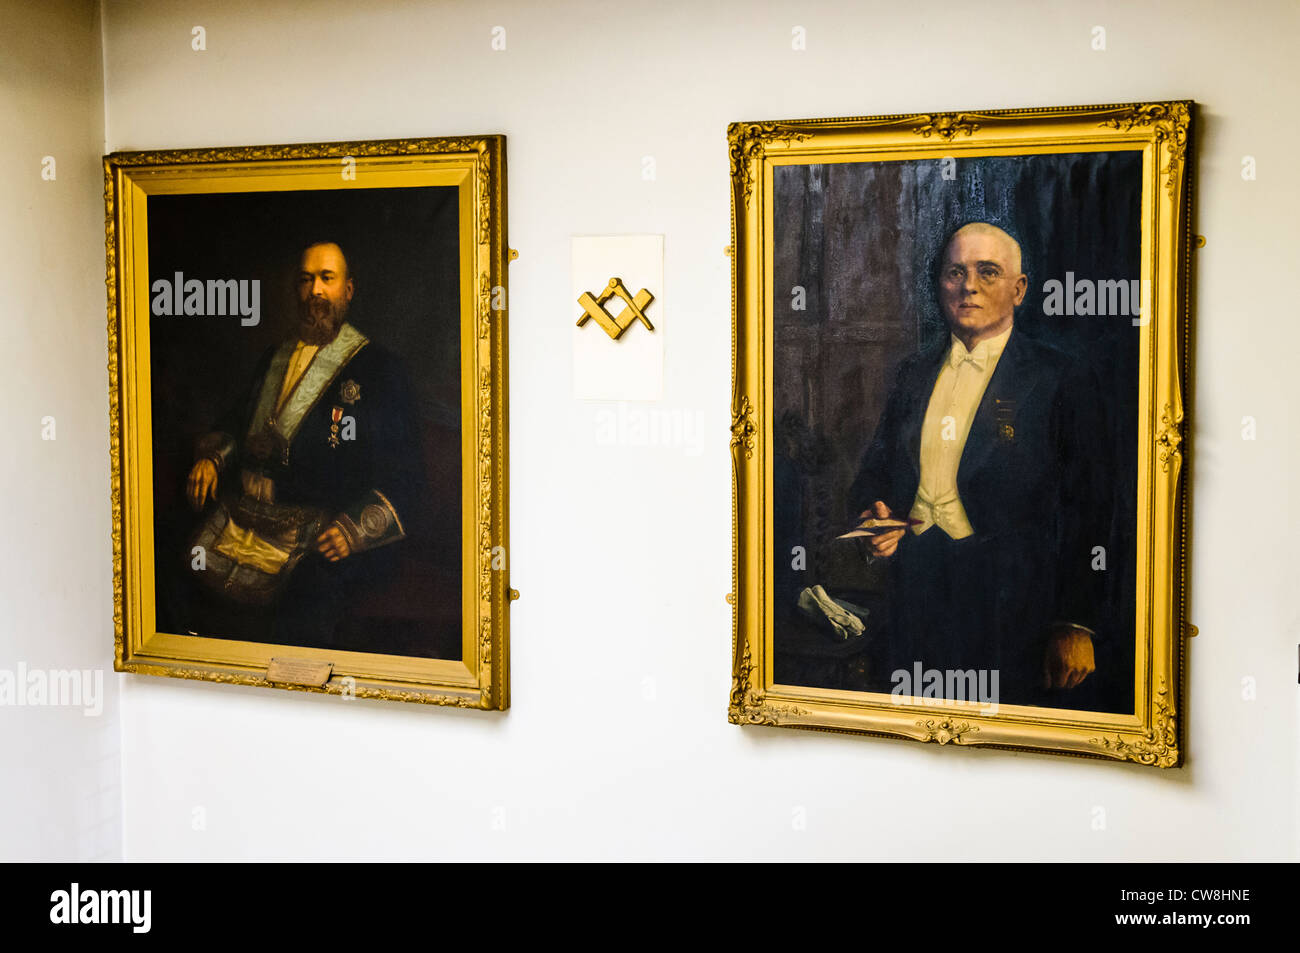 Paintings of past Worshipful Masters in a Masonic Lodge - Stock Image